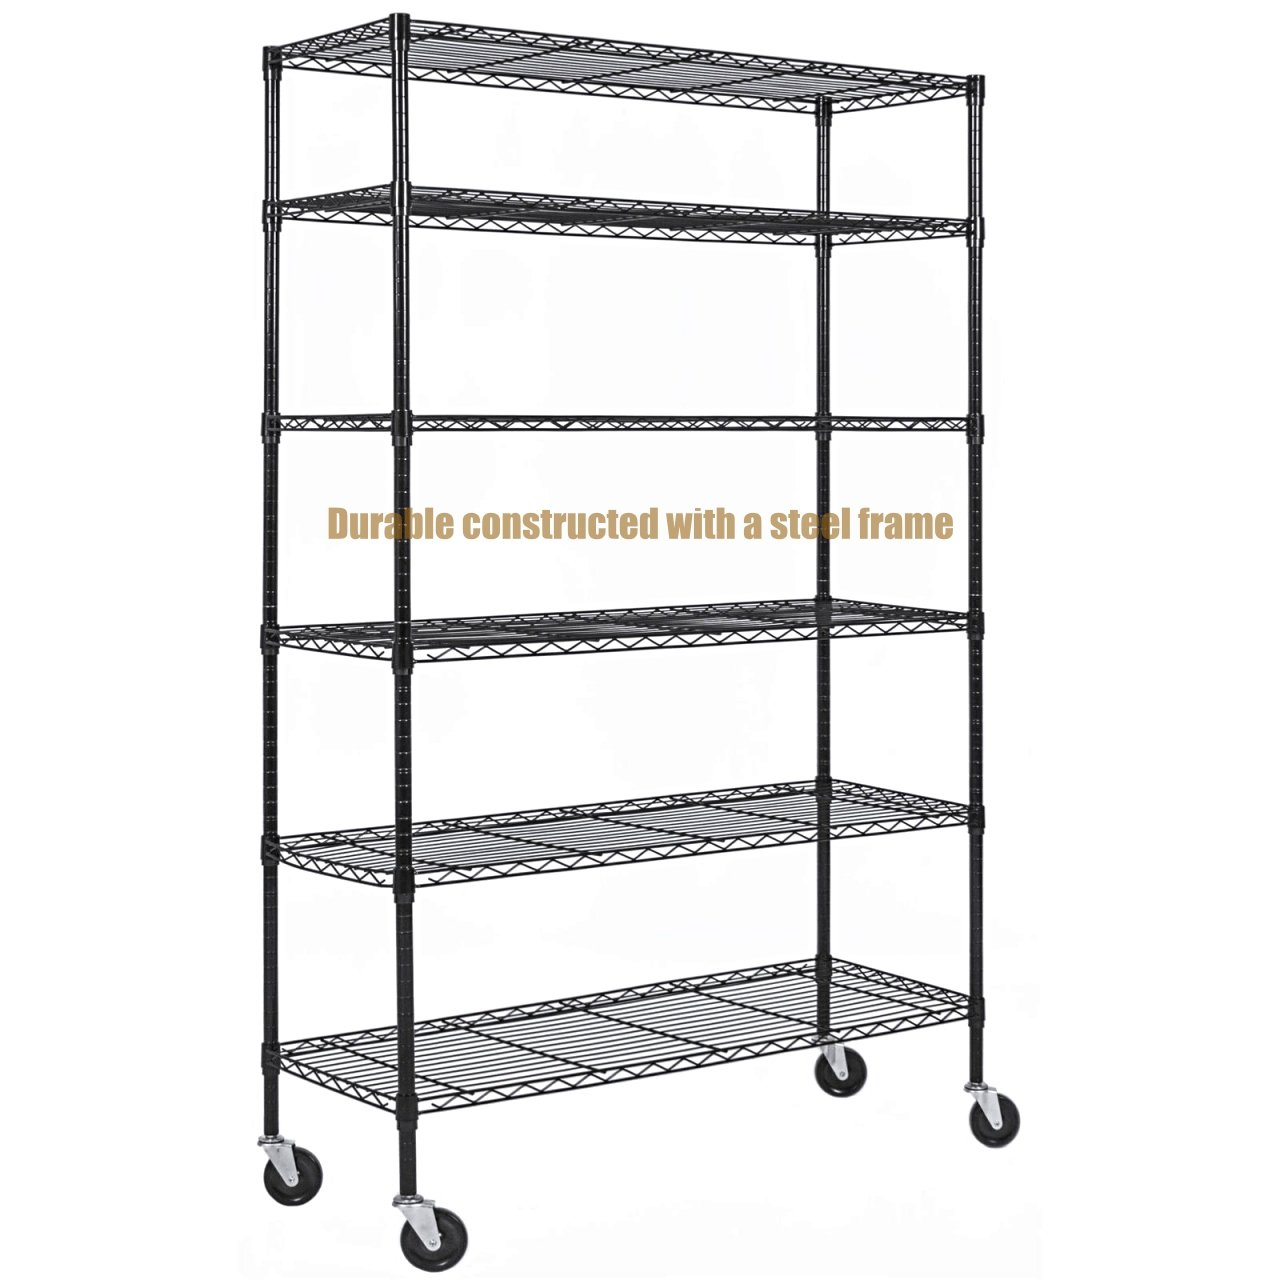 Durable Constructed 6-Tier Steel Shelving Storage Organizer Adjustable With Castor Wheels - Black Finish #1145